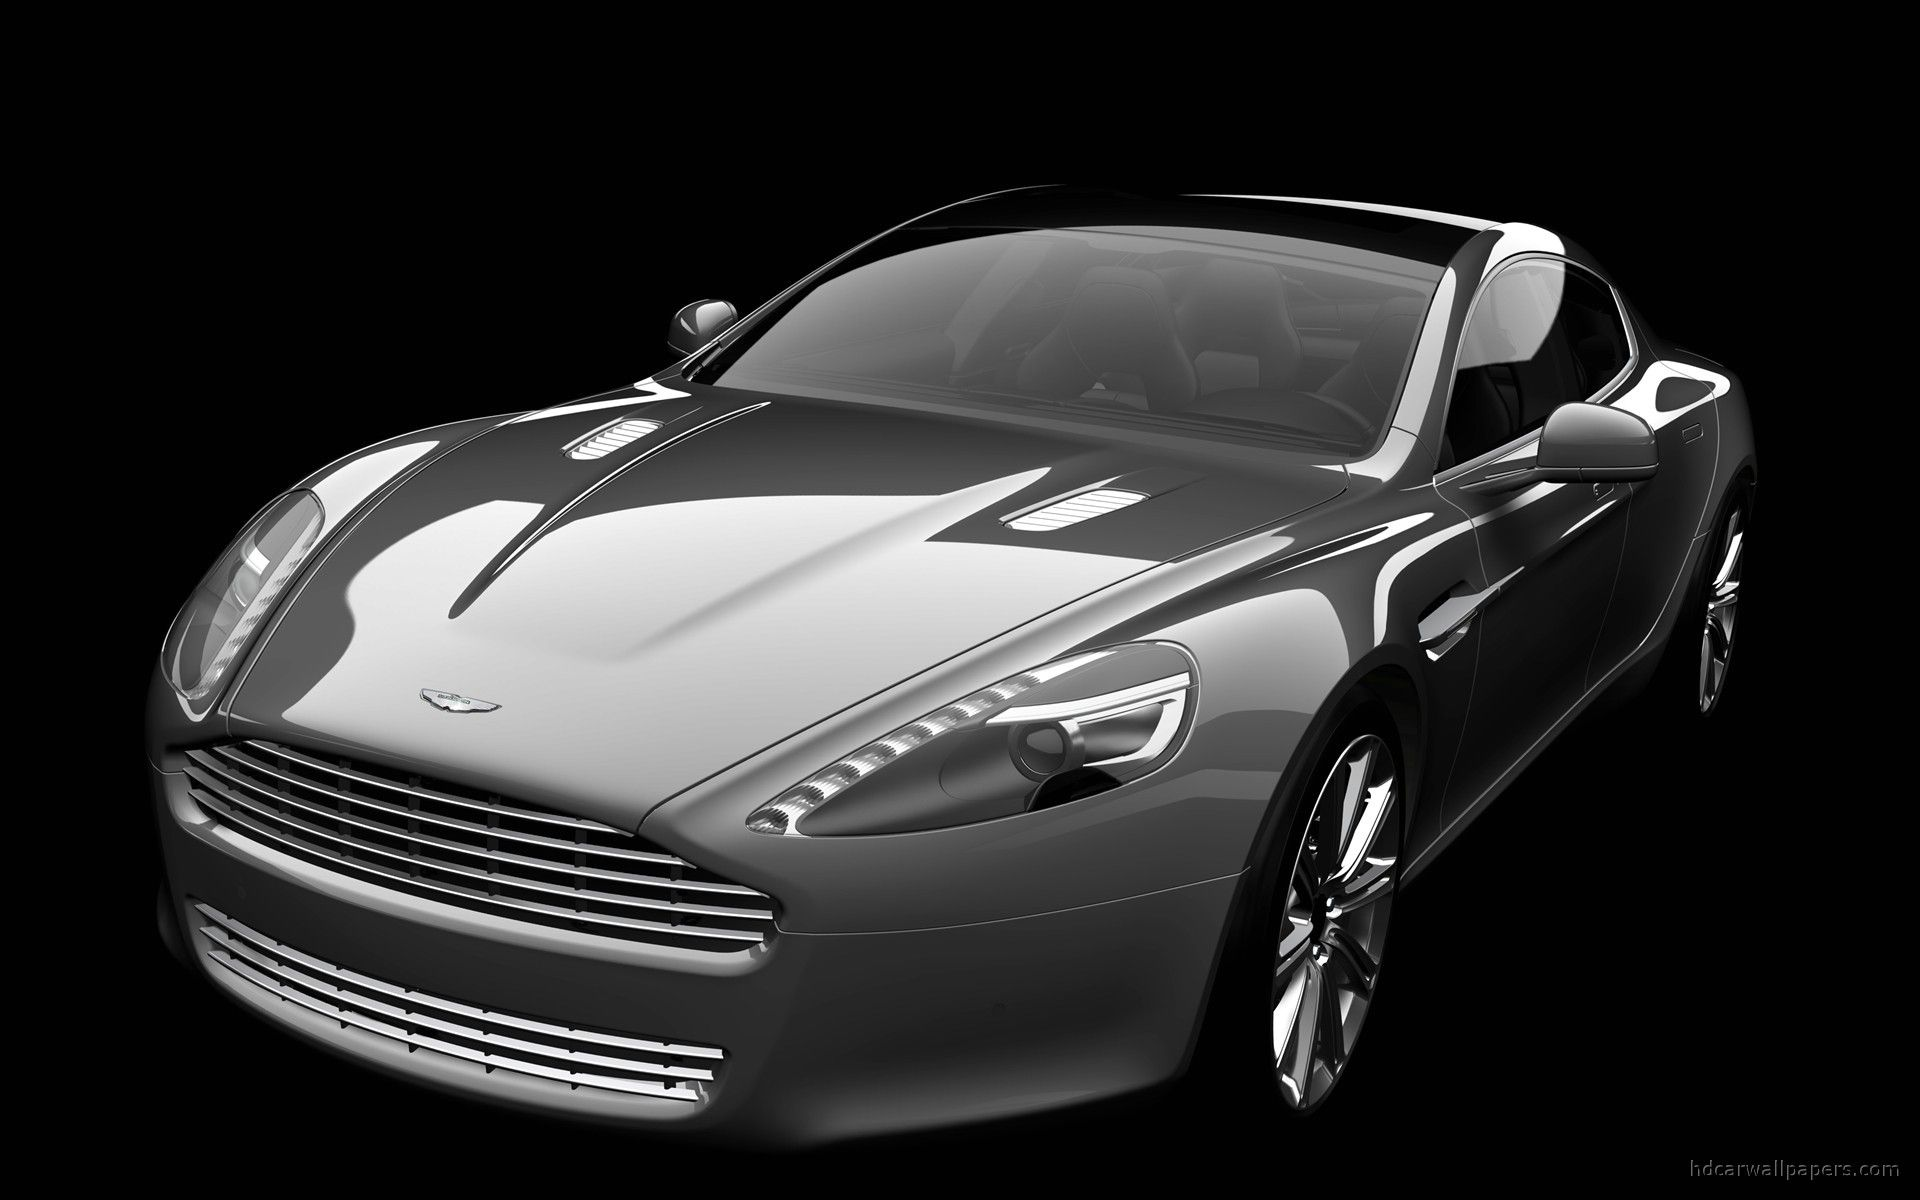 2010 aston martin rapide wallpapers    http://www.hdcarwallpapers.in/wallpaper/2010-aston-martin-rapide-wallpapers.html